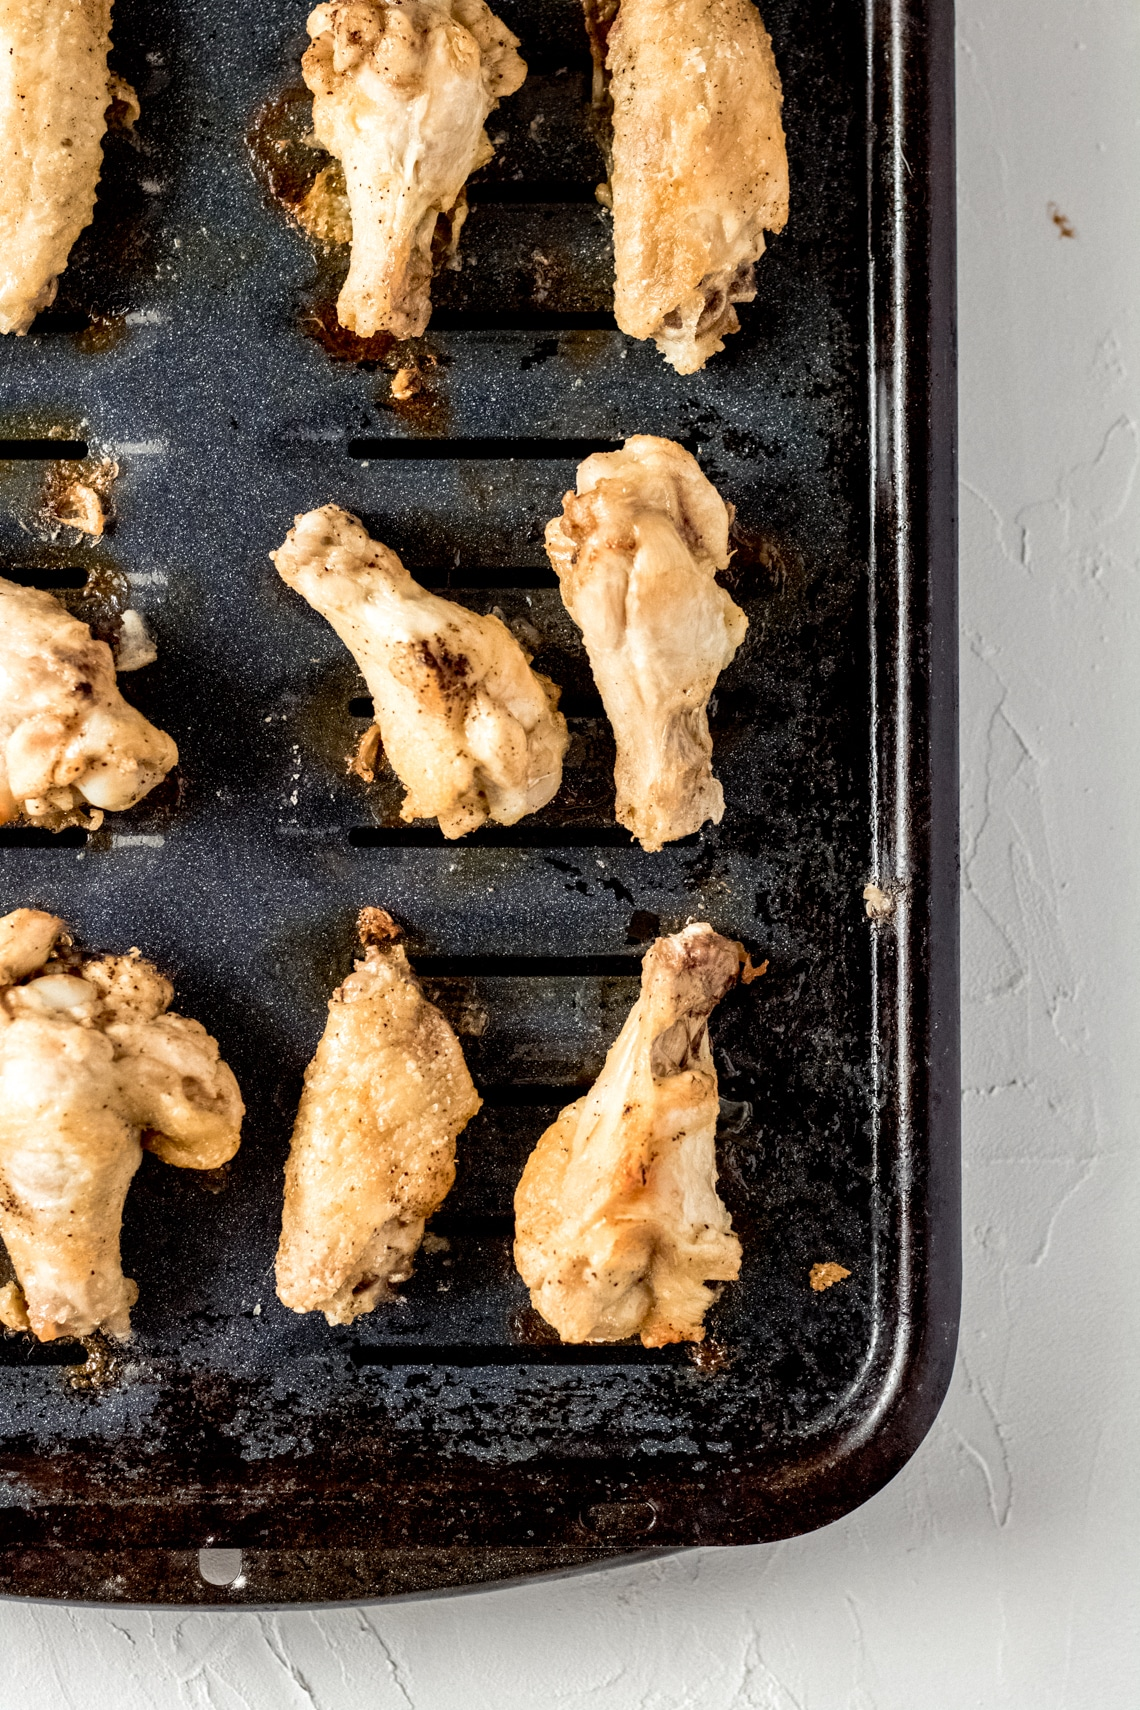 naked baked chicken wings